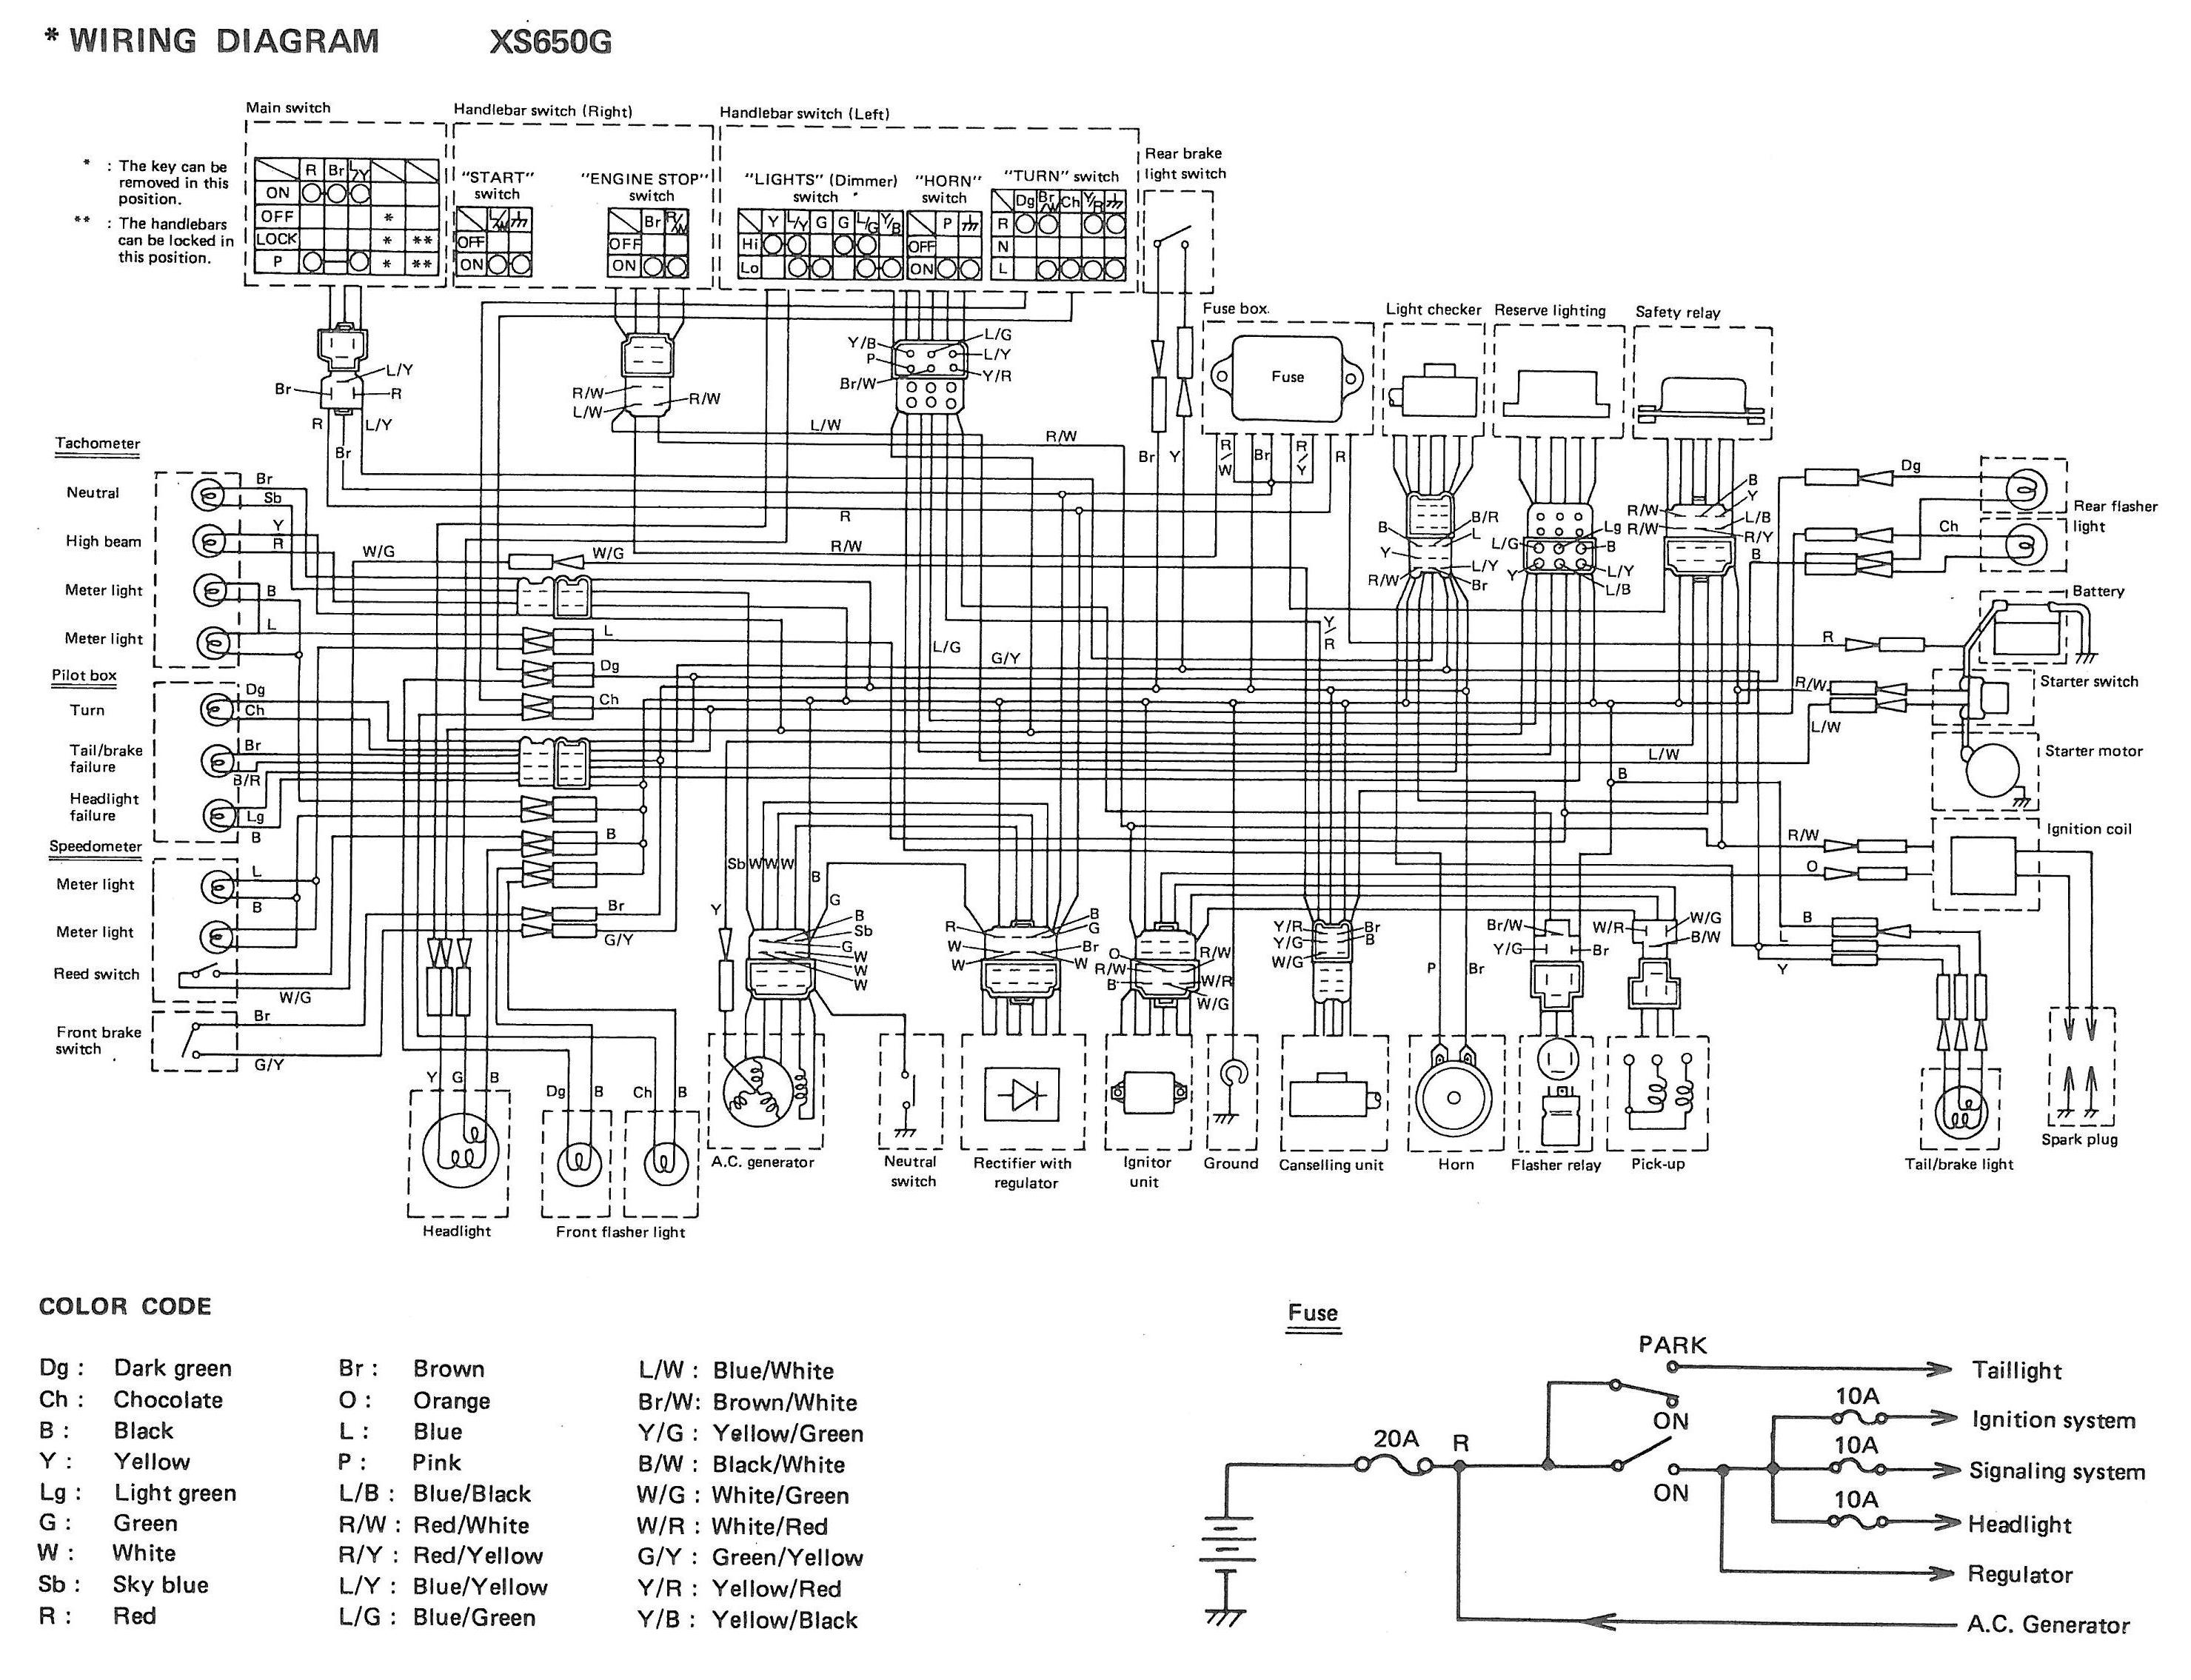 Yamaha Xs650 Wiring Diagram Free Download Schematic Color For 1977 Triumph Spitfire Xs650sg 1980 Another Blog About U2022 Rh Ok2 Infoservice Ru